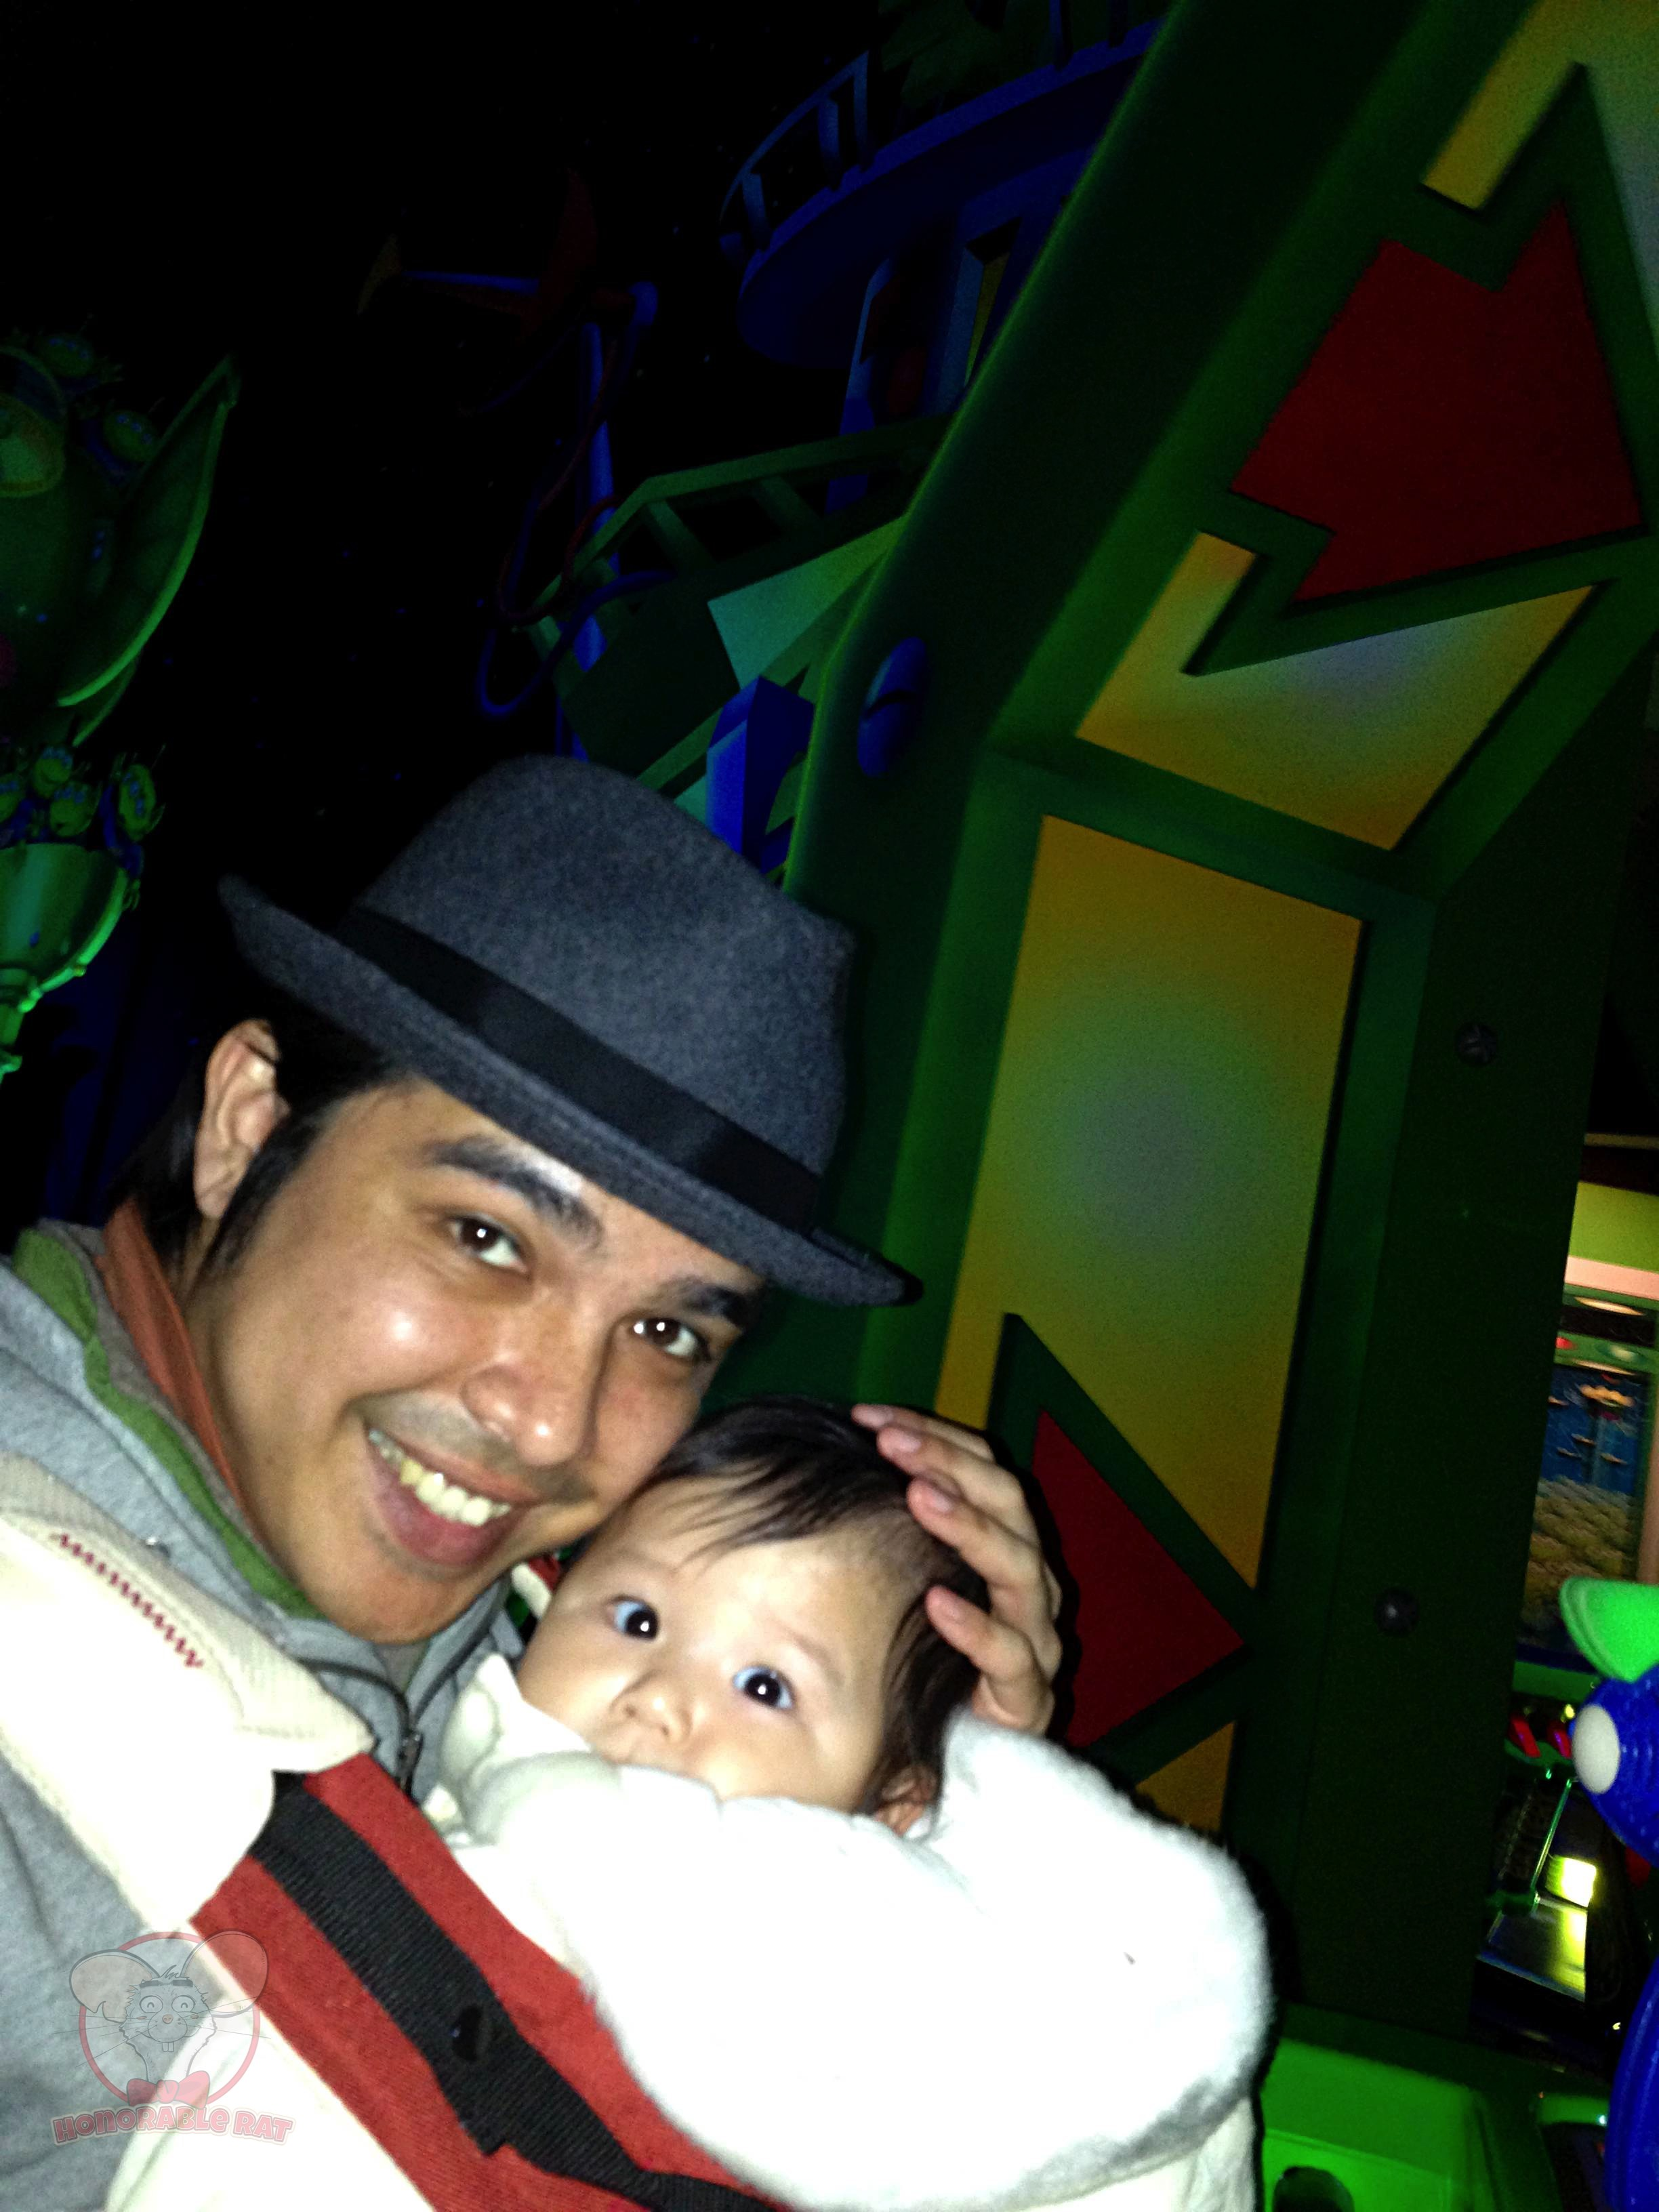 IN the ride vehicle with Mahina IN her baby carrier IN Buzz Lightyear's Astro Blasters IN Tomorrowland IN Tokyo Disneyland